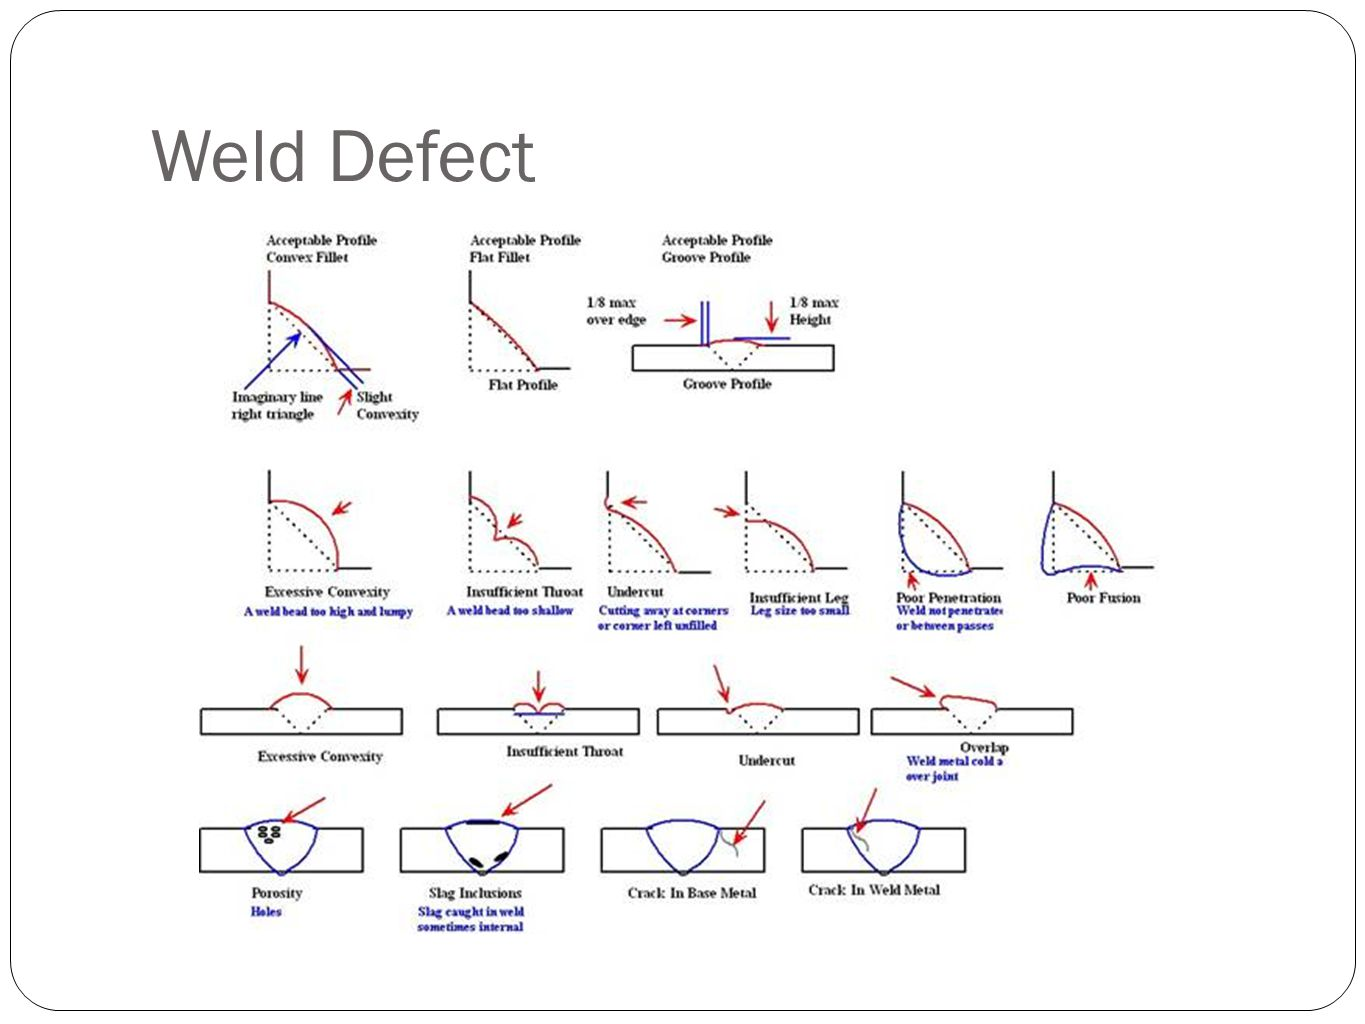 Weld Defect